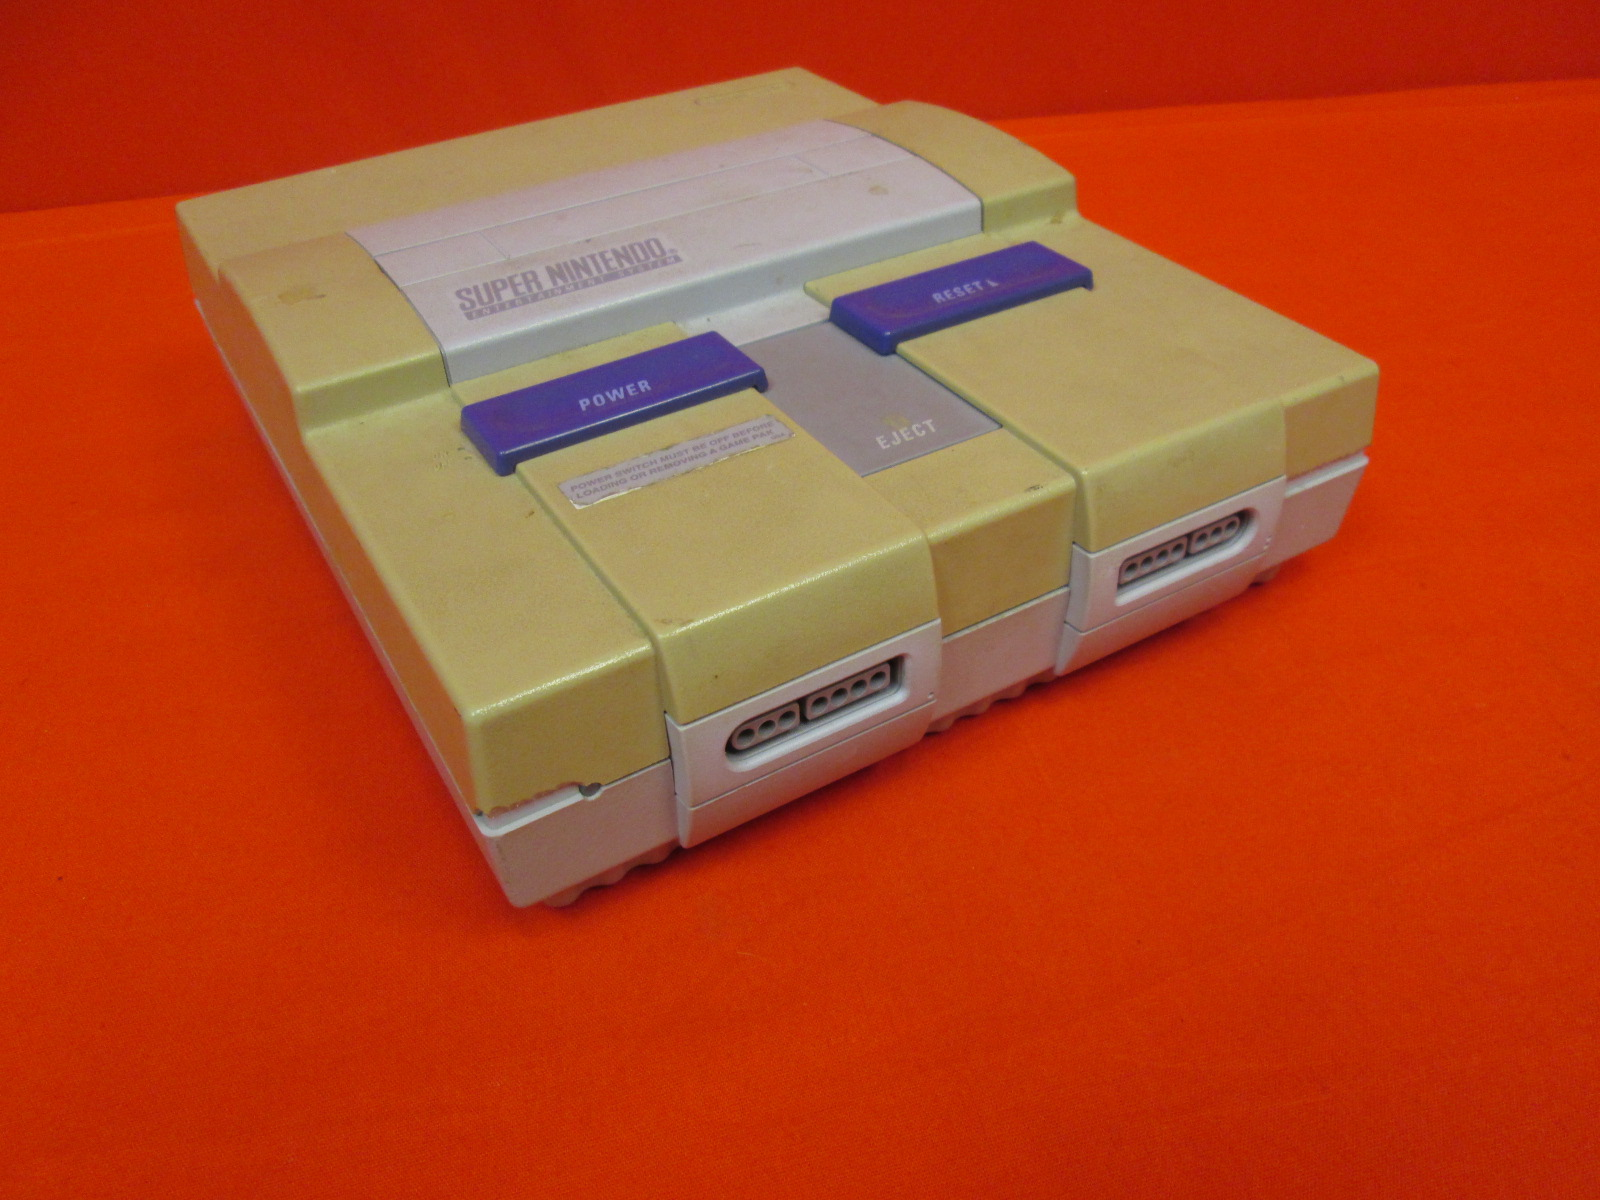 Super Nintendo SNES Video Game Console With Controller And Cables